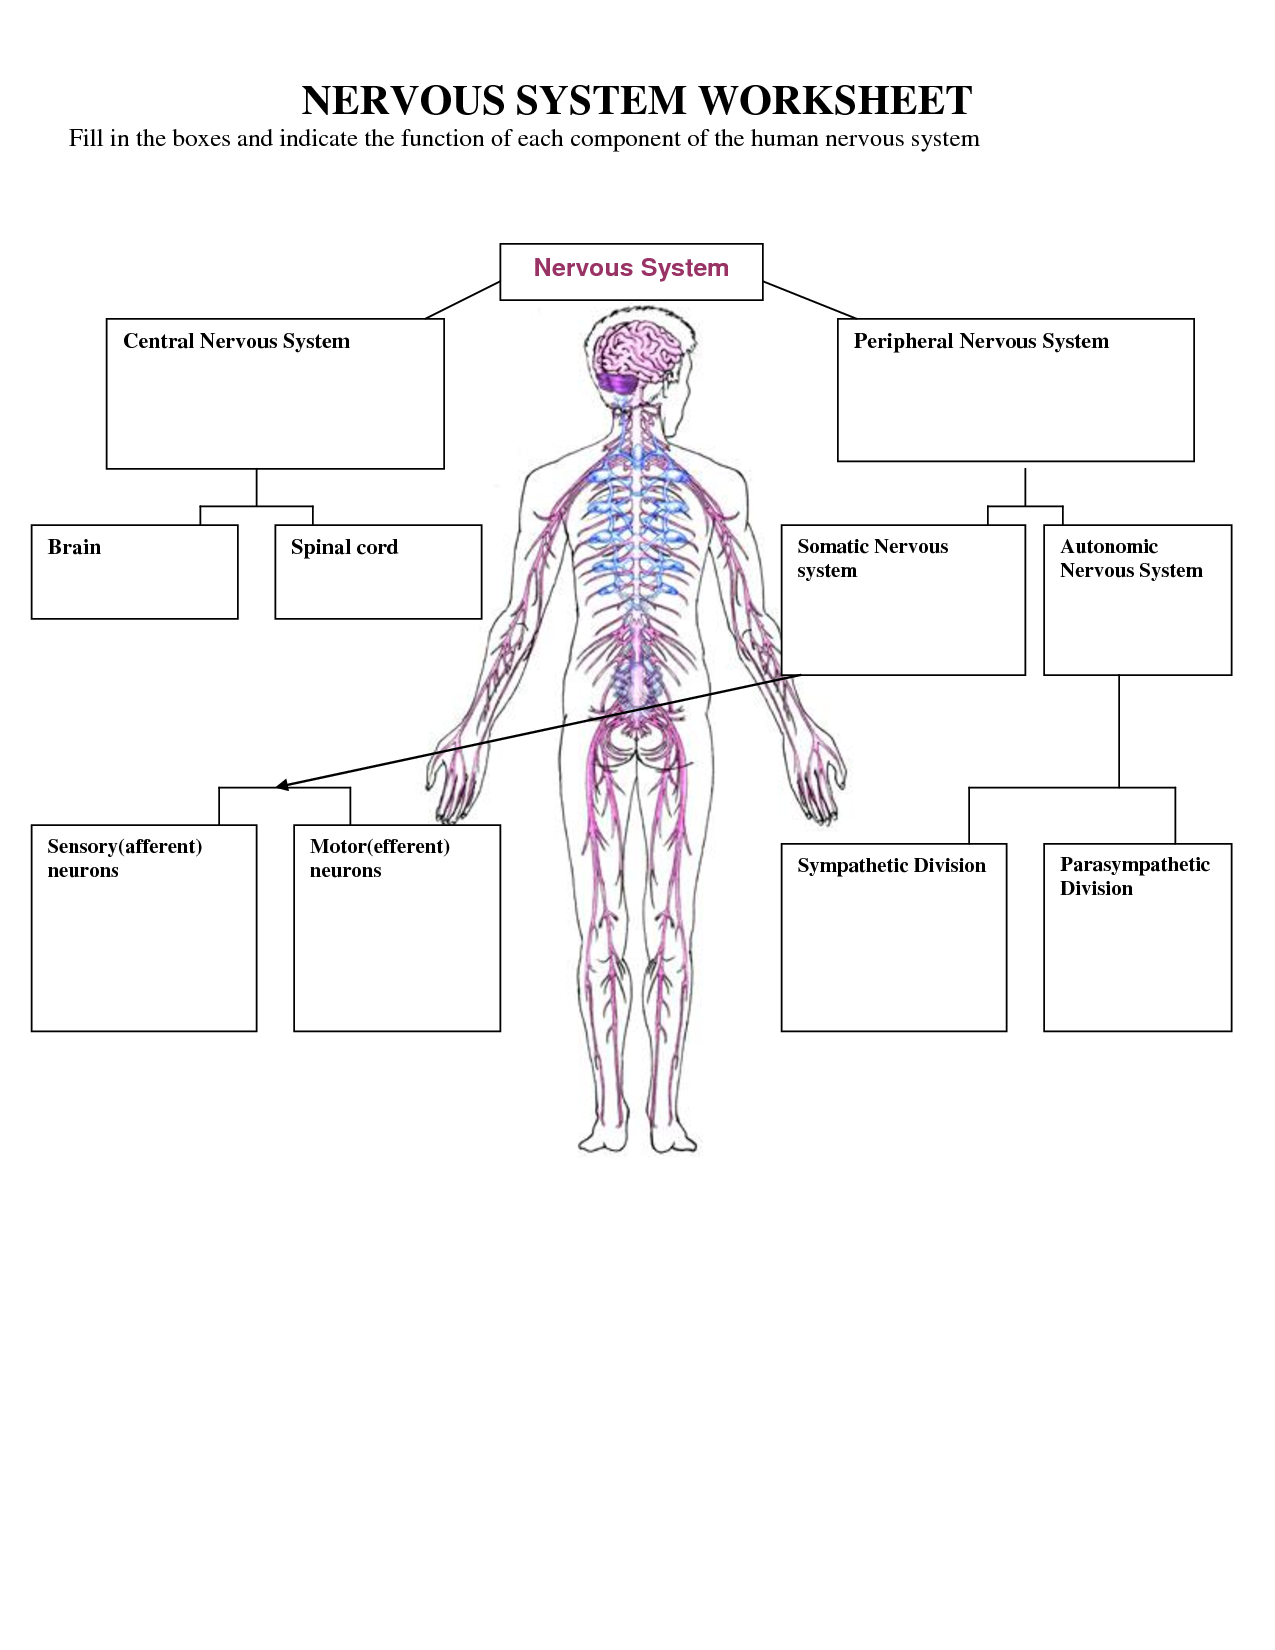 Nervous System Worksheets | Places to Visit | Pinterest | Nervous ...